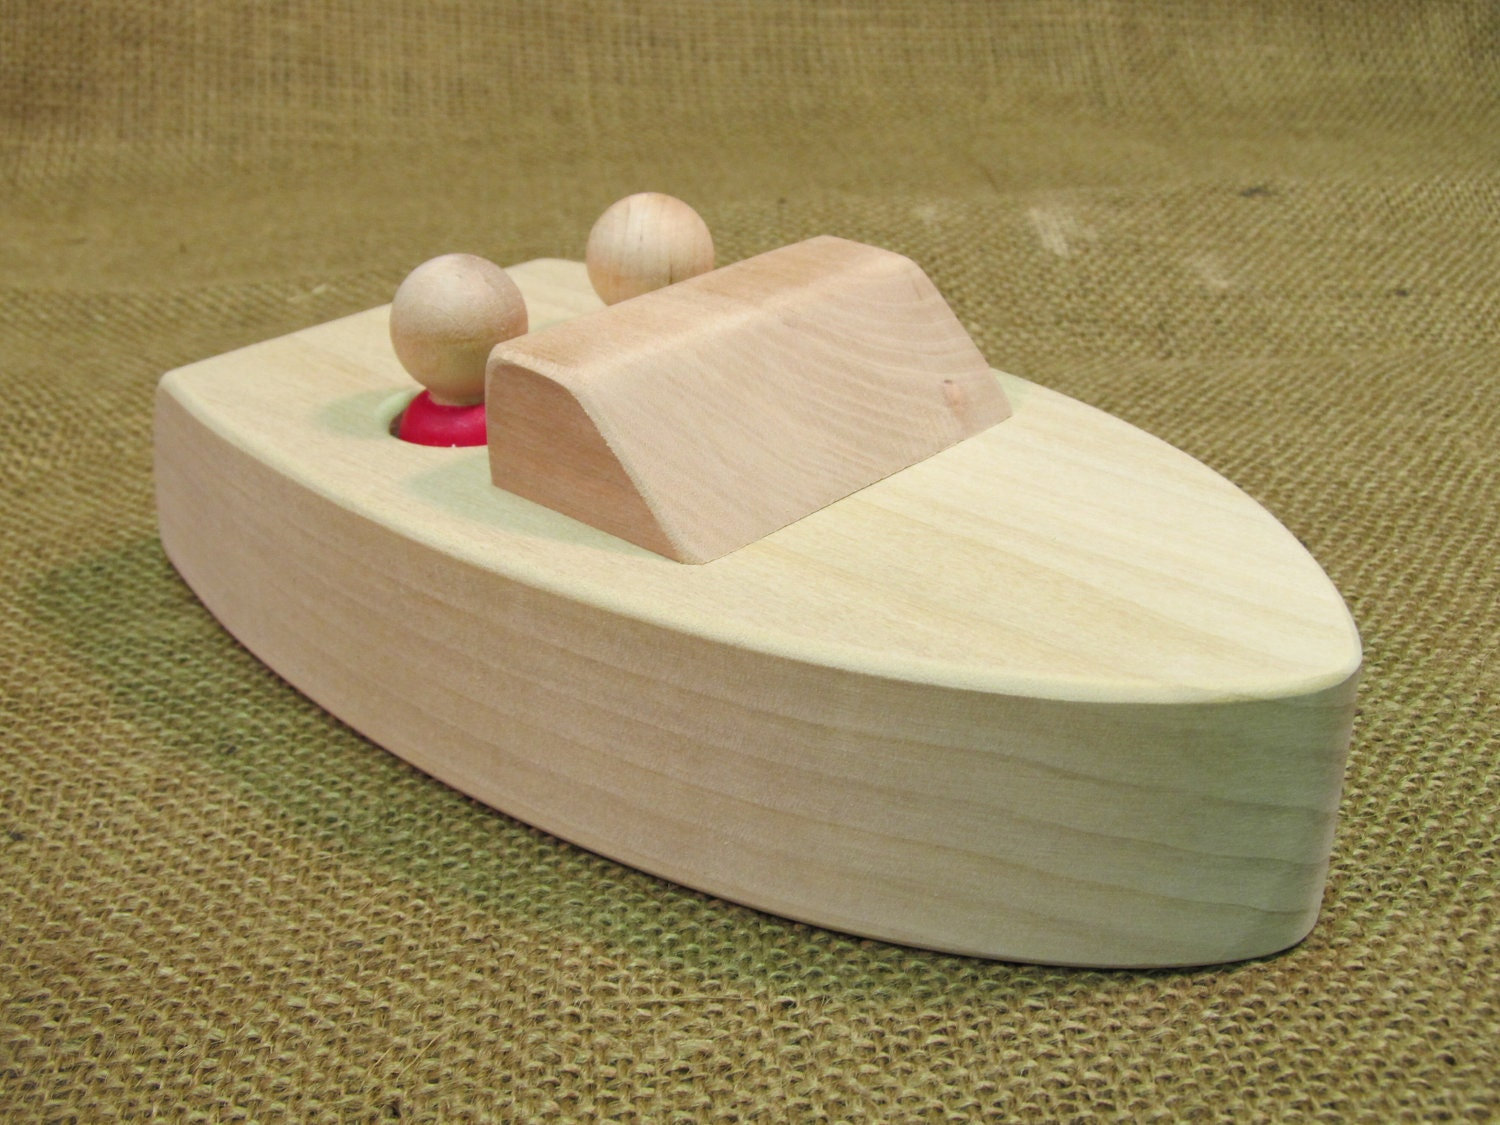 This is Toy wood paddle boat plans | boat plans